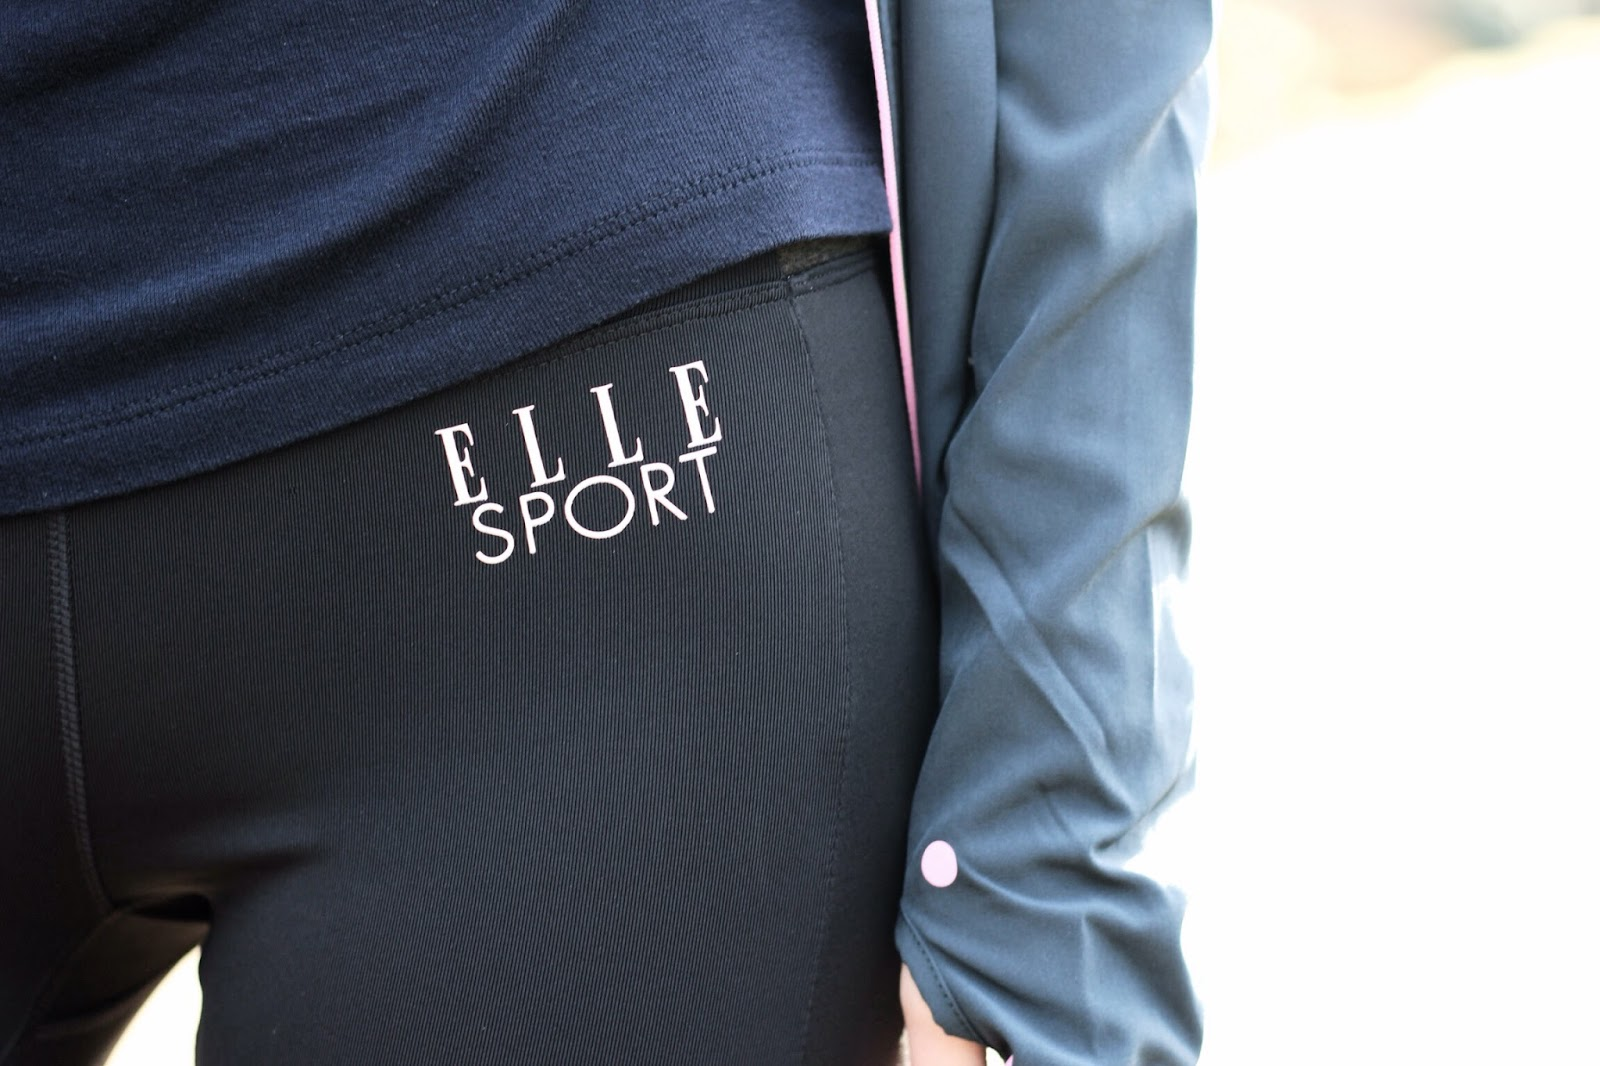 Fashion blogger elle sport clothing